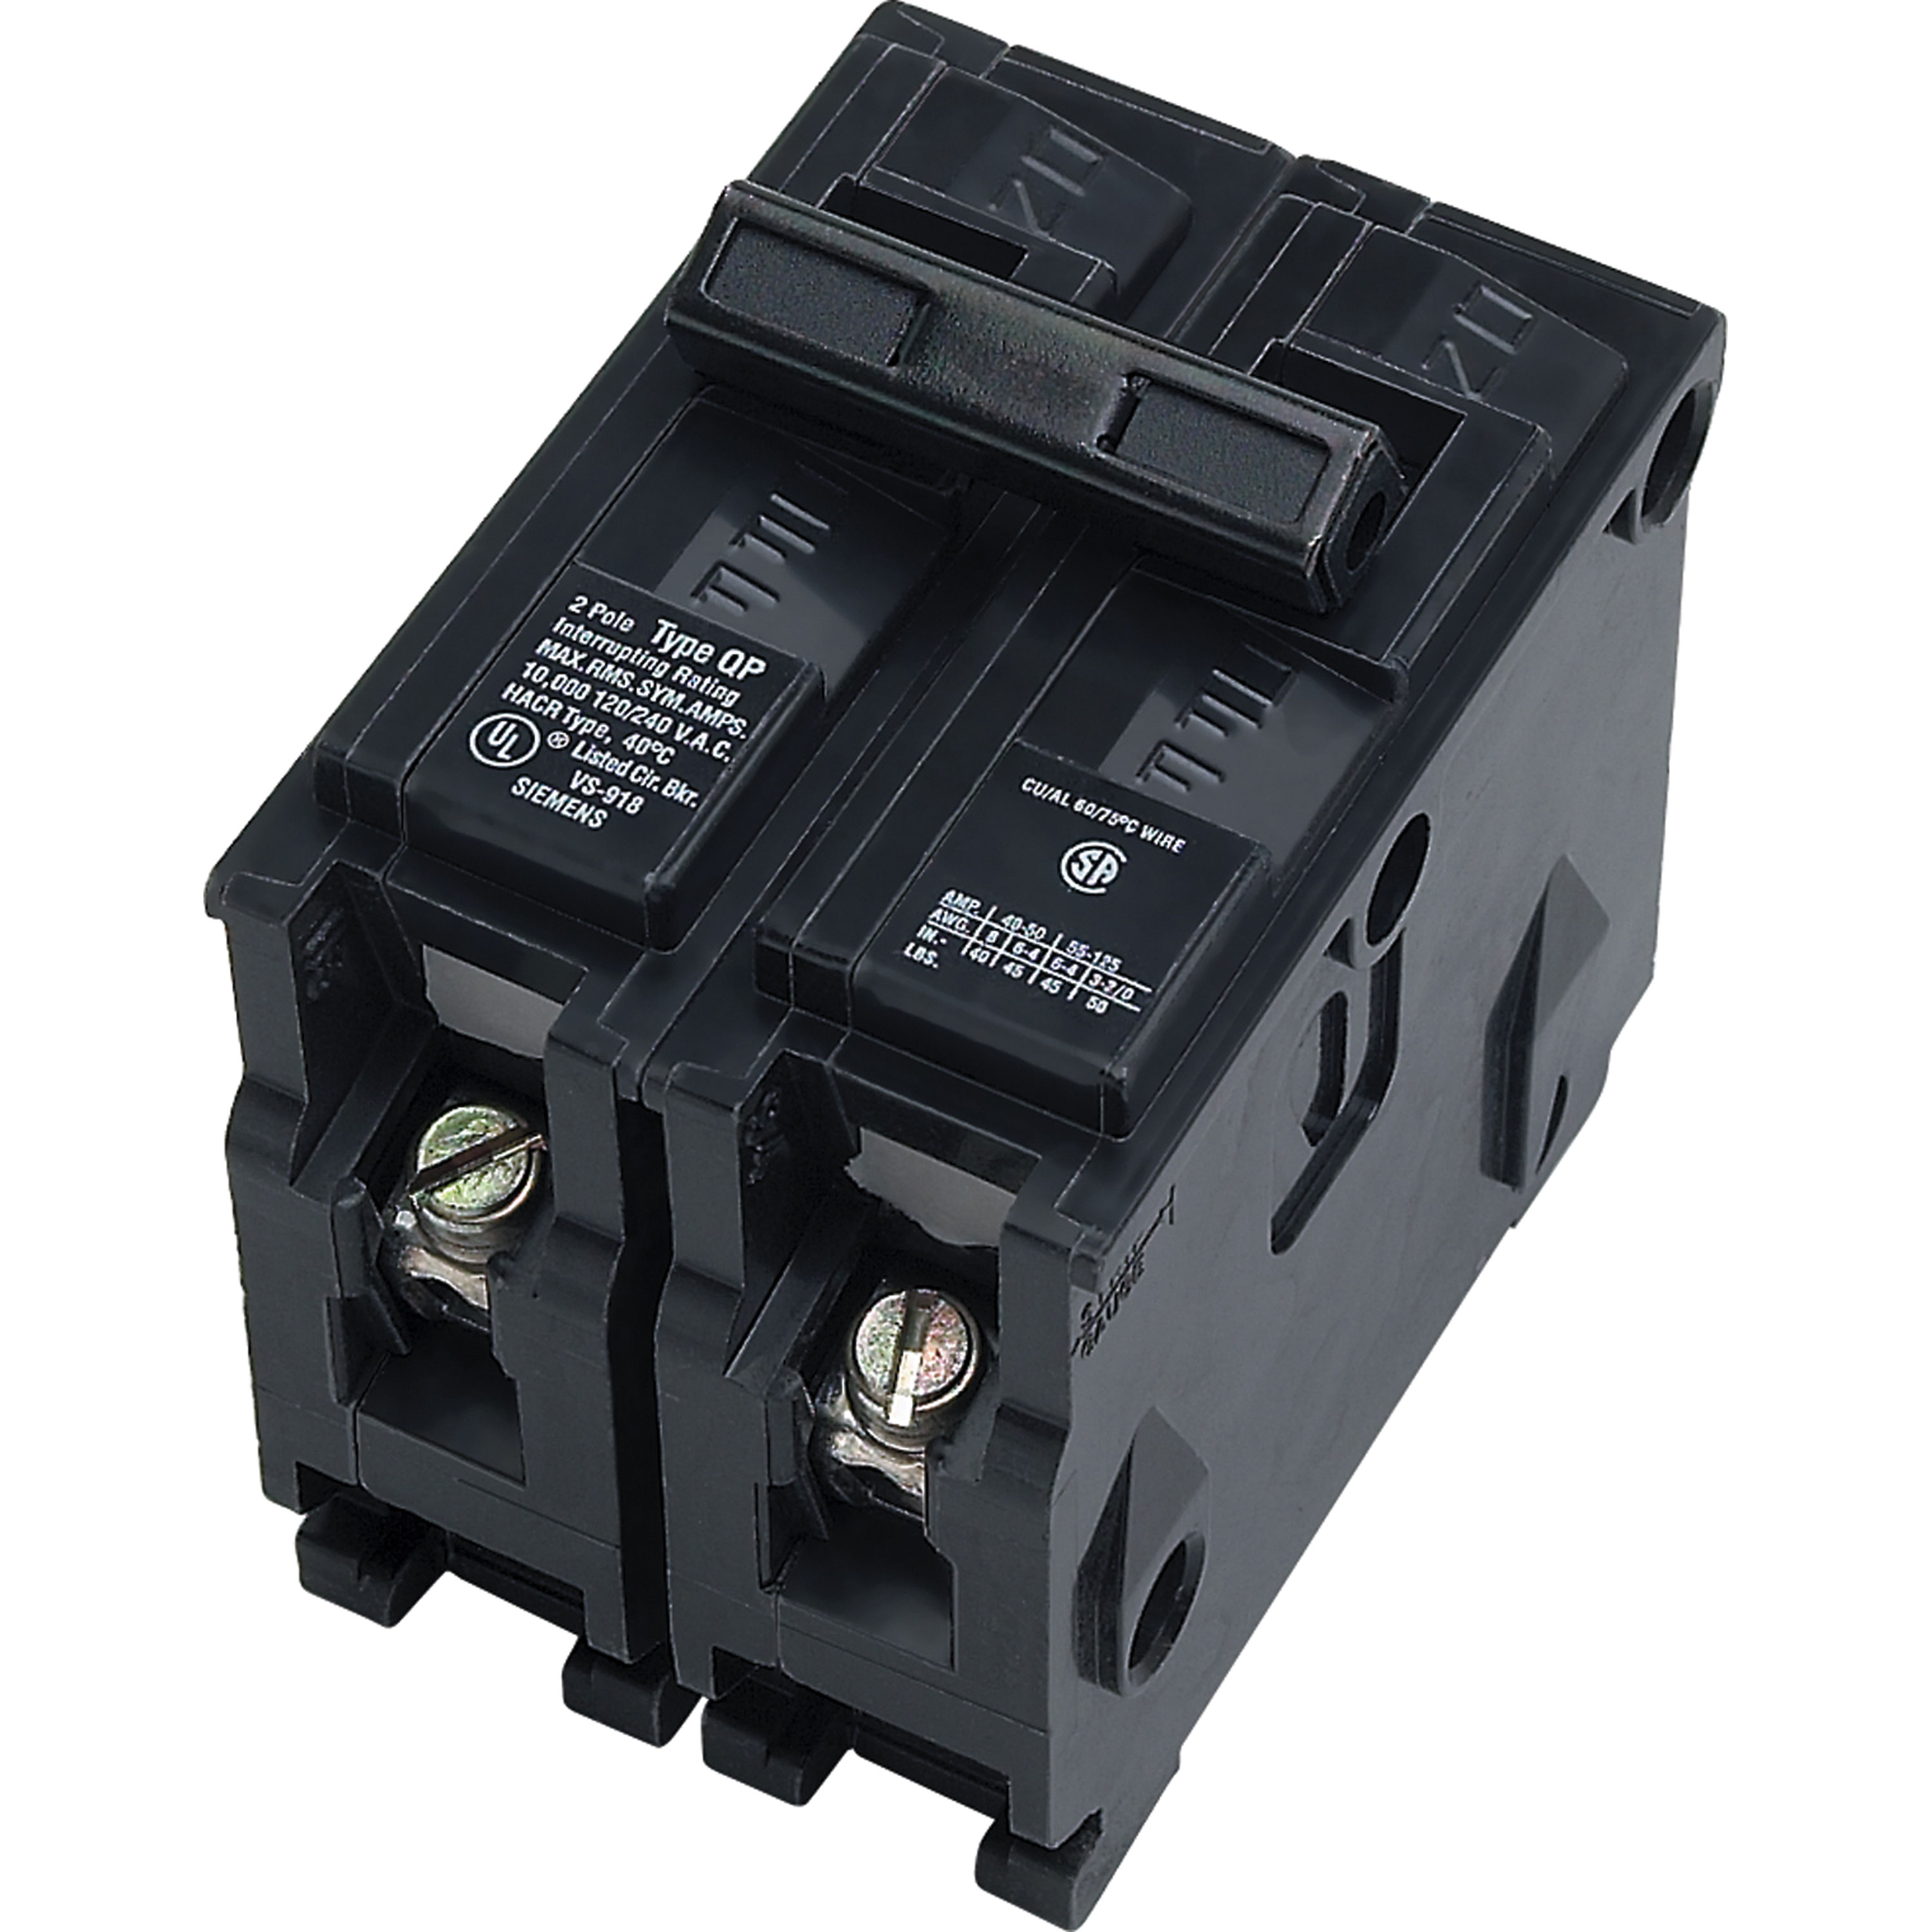 Parallax ITEQ250 Double-Pole Circuit Breaker - 50 Amp